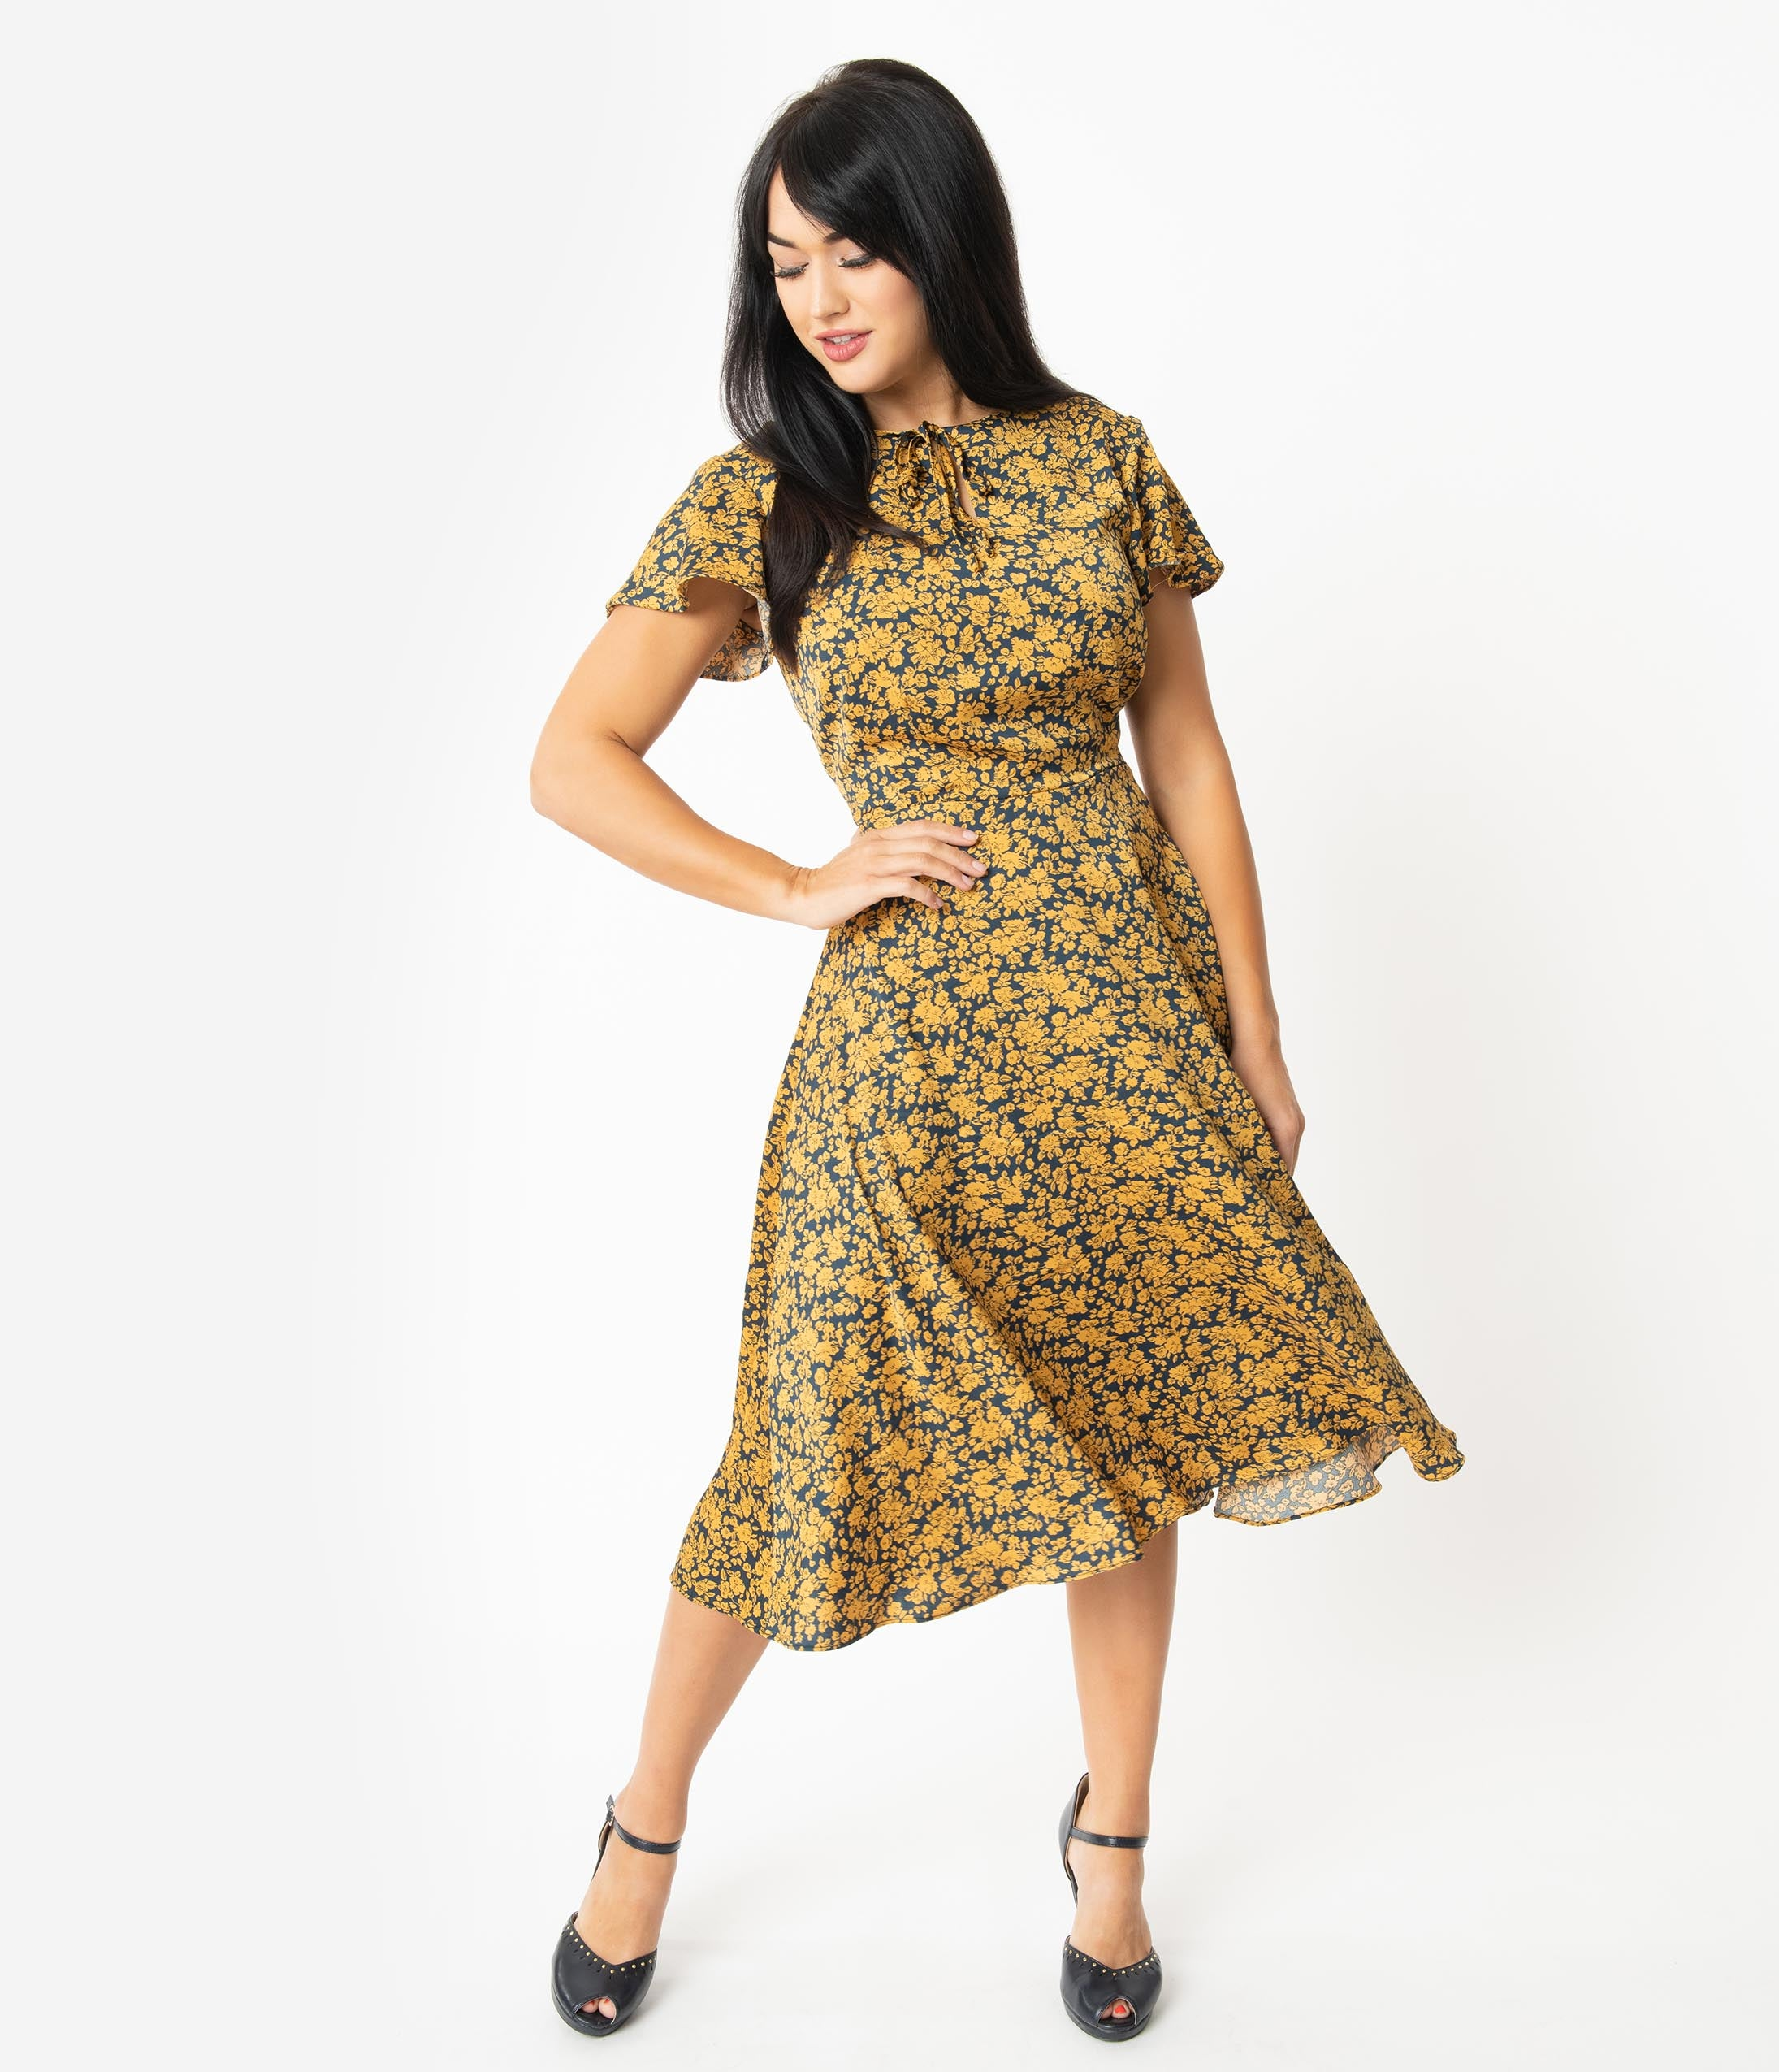 500 Vintage Style Dresses for Sale | Vintage Inspired Dresses Unique Vintage 1940S Navy  Mustard Floral Formosa Swing Dress $78.00 AT vintagedancer.com